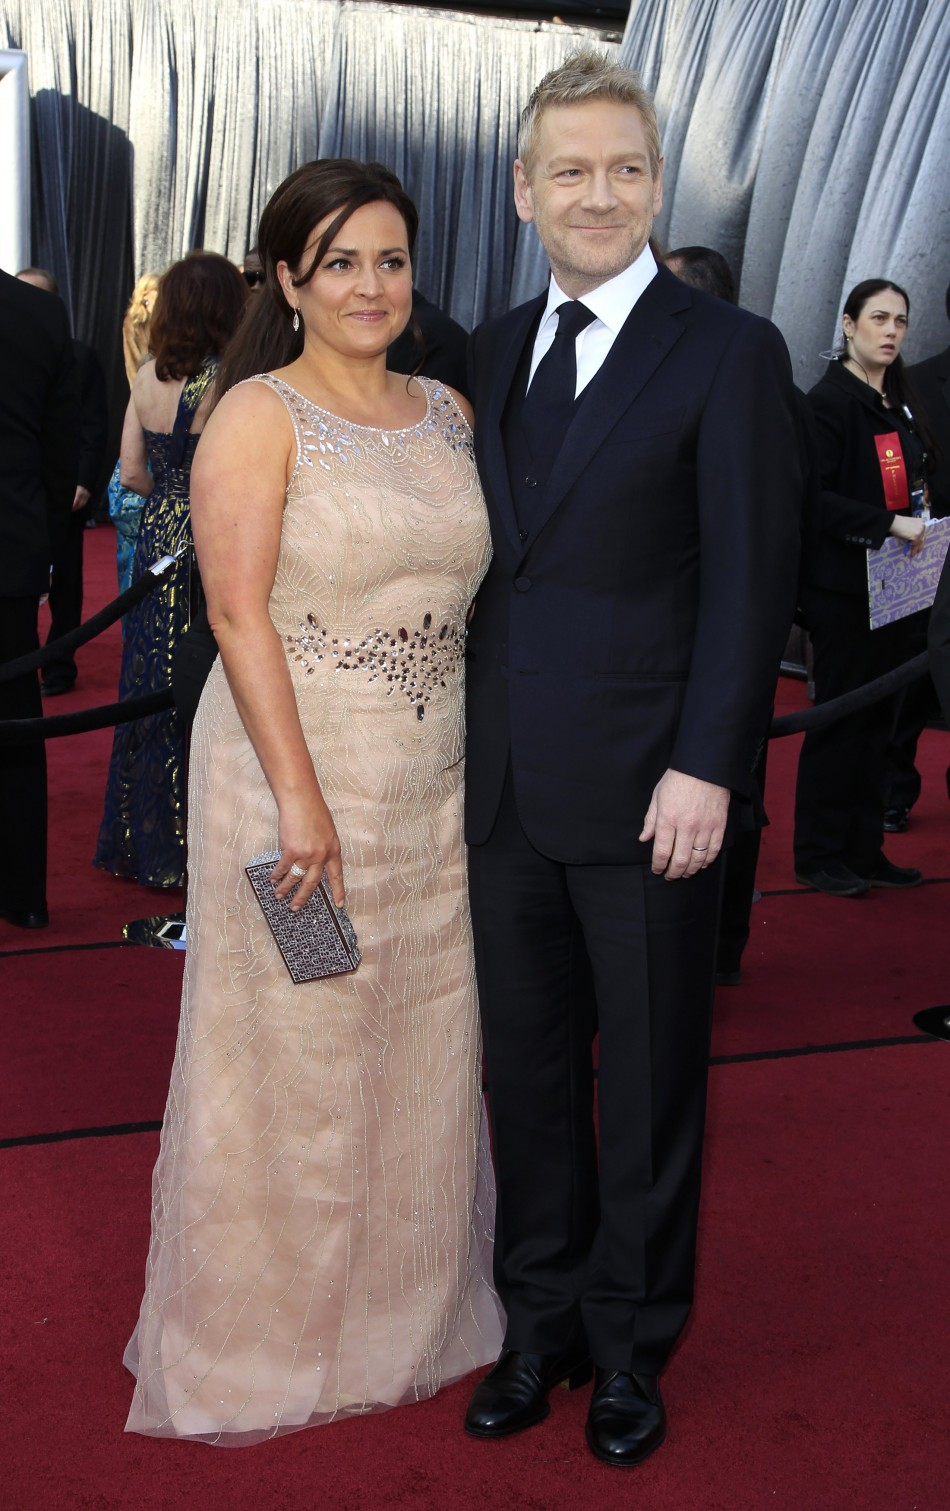 Actor Kenneth Branagh and his wife Lindsay Brunnock pose as they arrive at the 84th Academy Awards in Hollywood